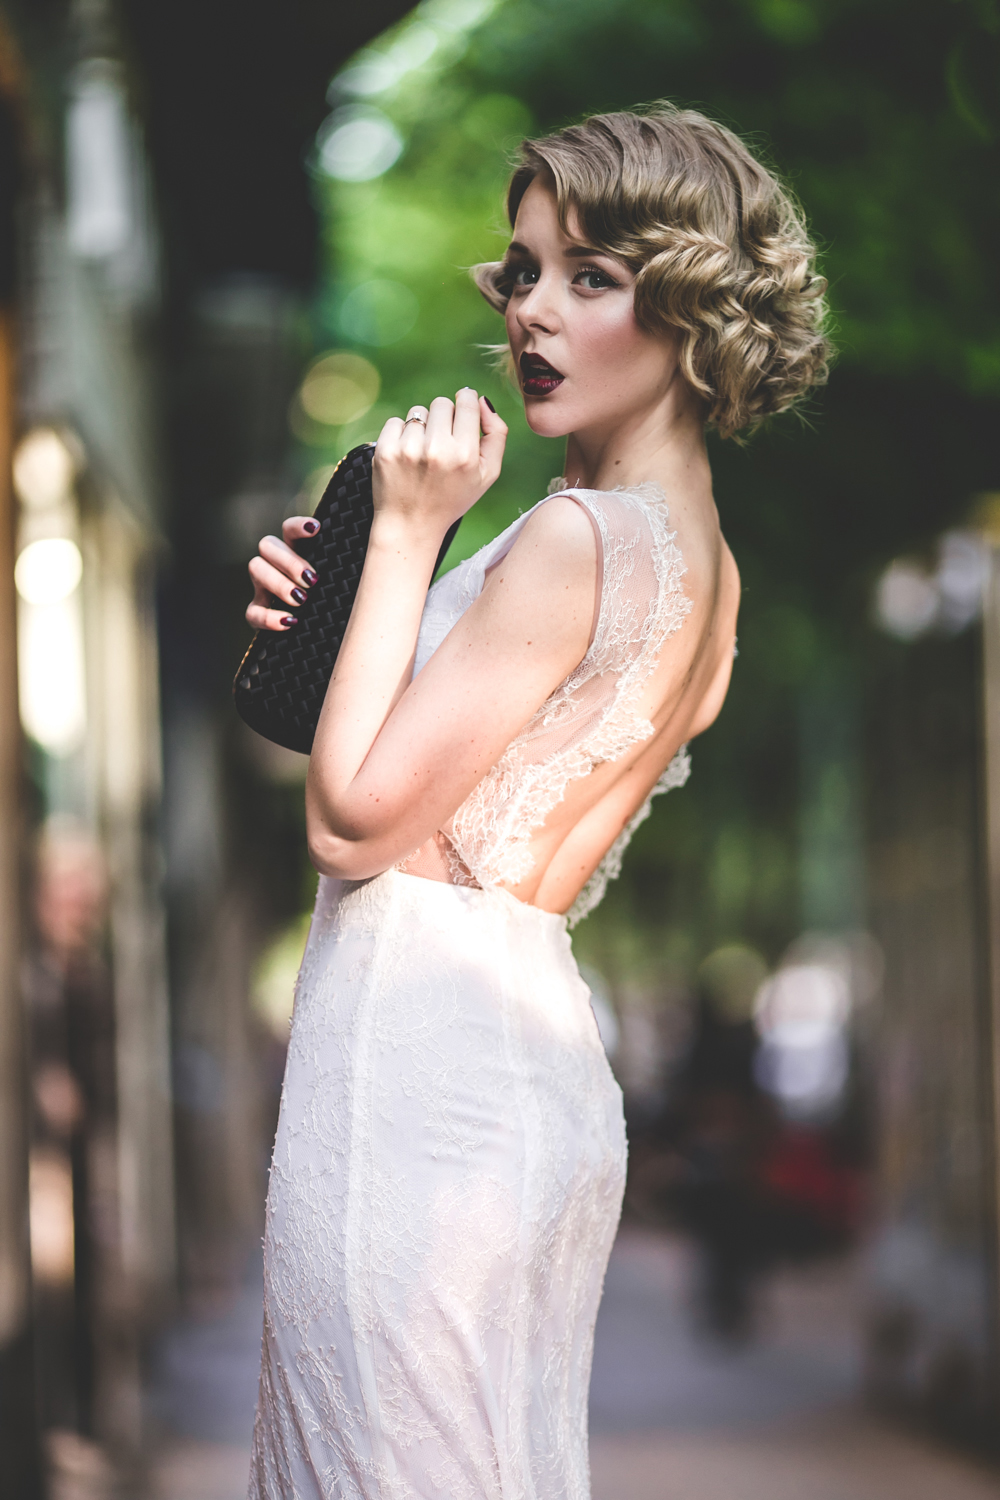 darya kamalova fashion blogger from thecablook in trip in Barcelona Spain with Pronovias 2015 wedding dresses collection catwalk wearing uel camilo white gown bottega veneta knot clutch and black lips-1804